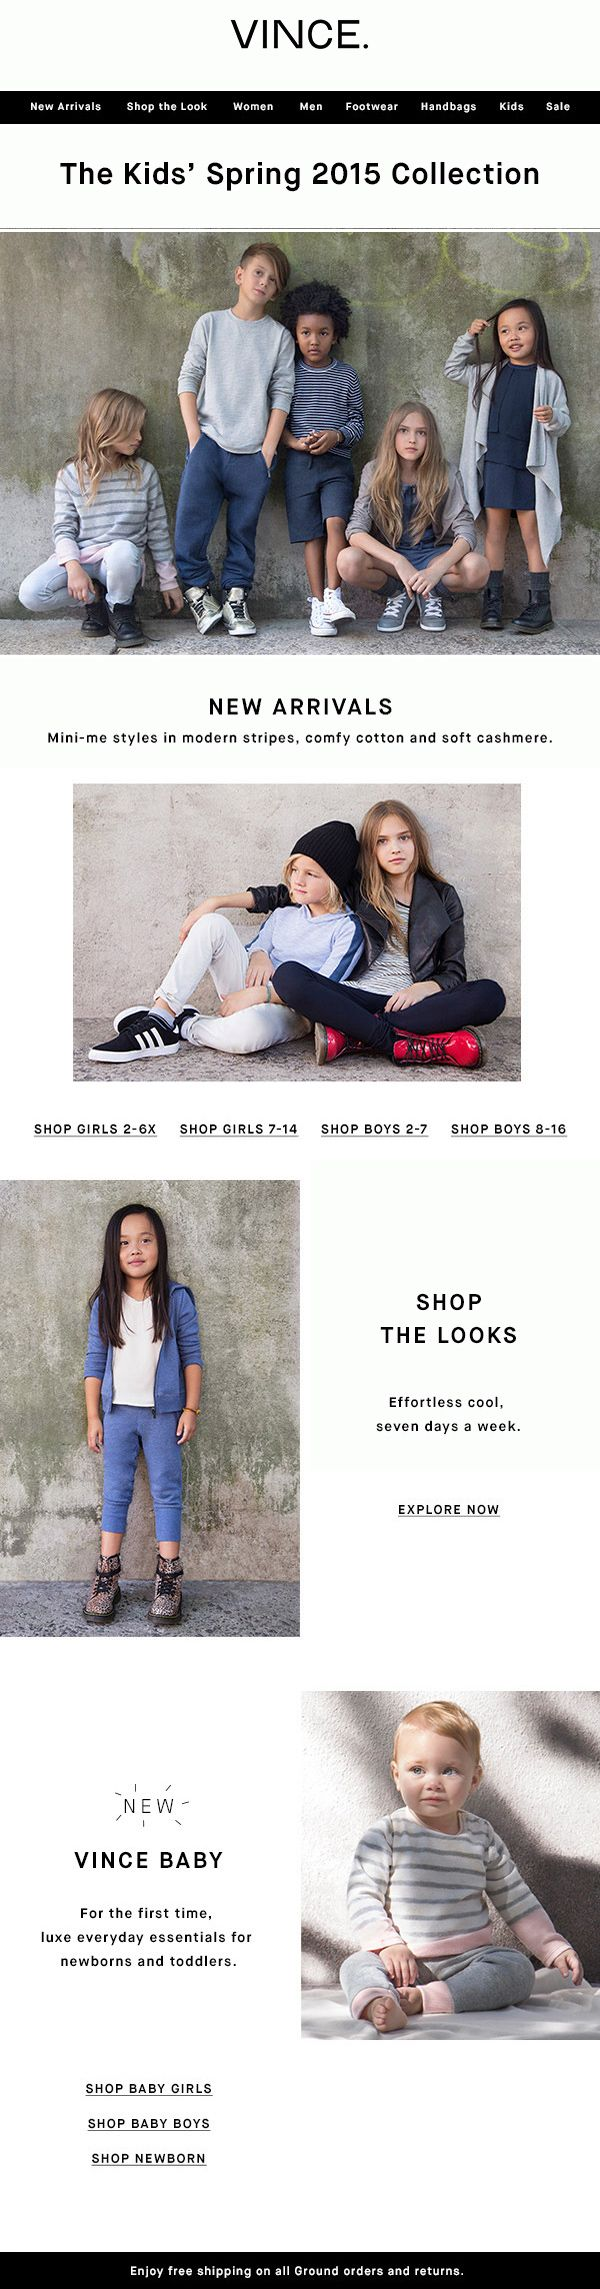 Vince: Introducing The Kids' Spring Collection